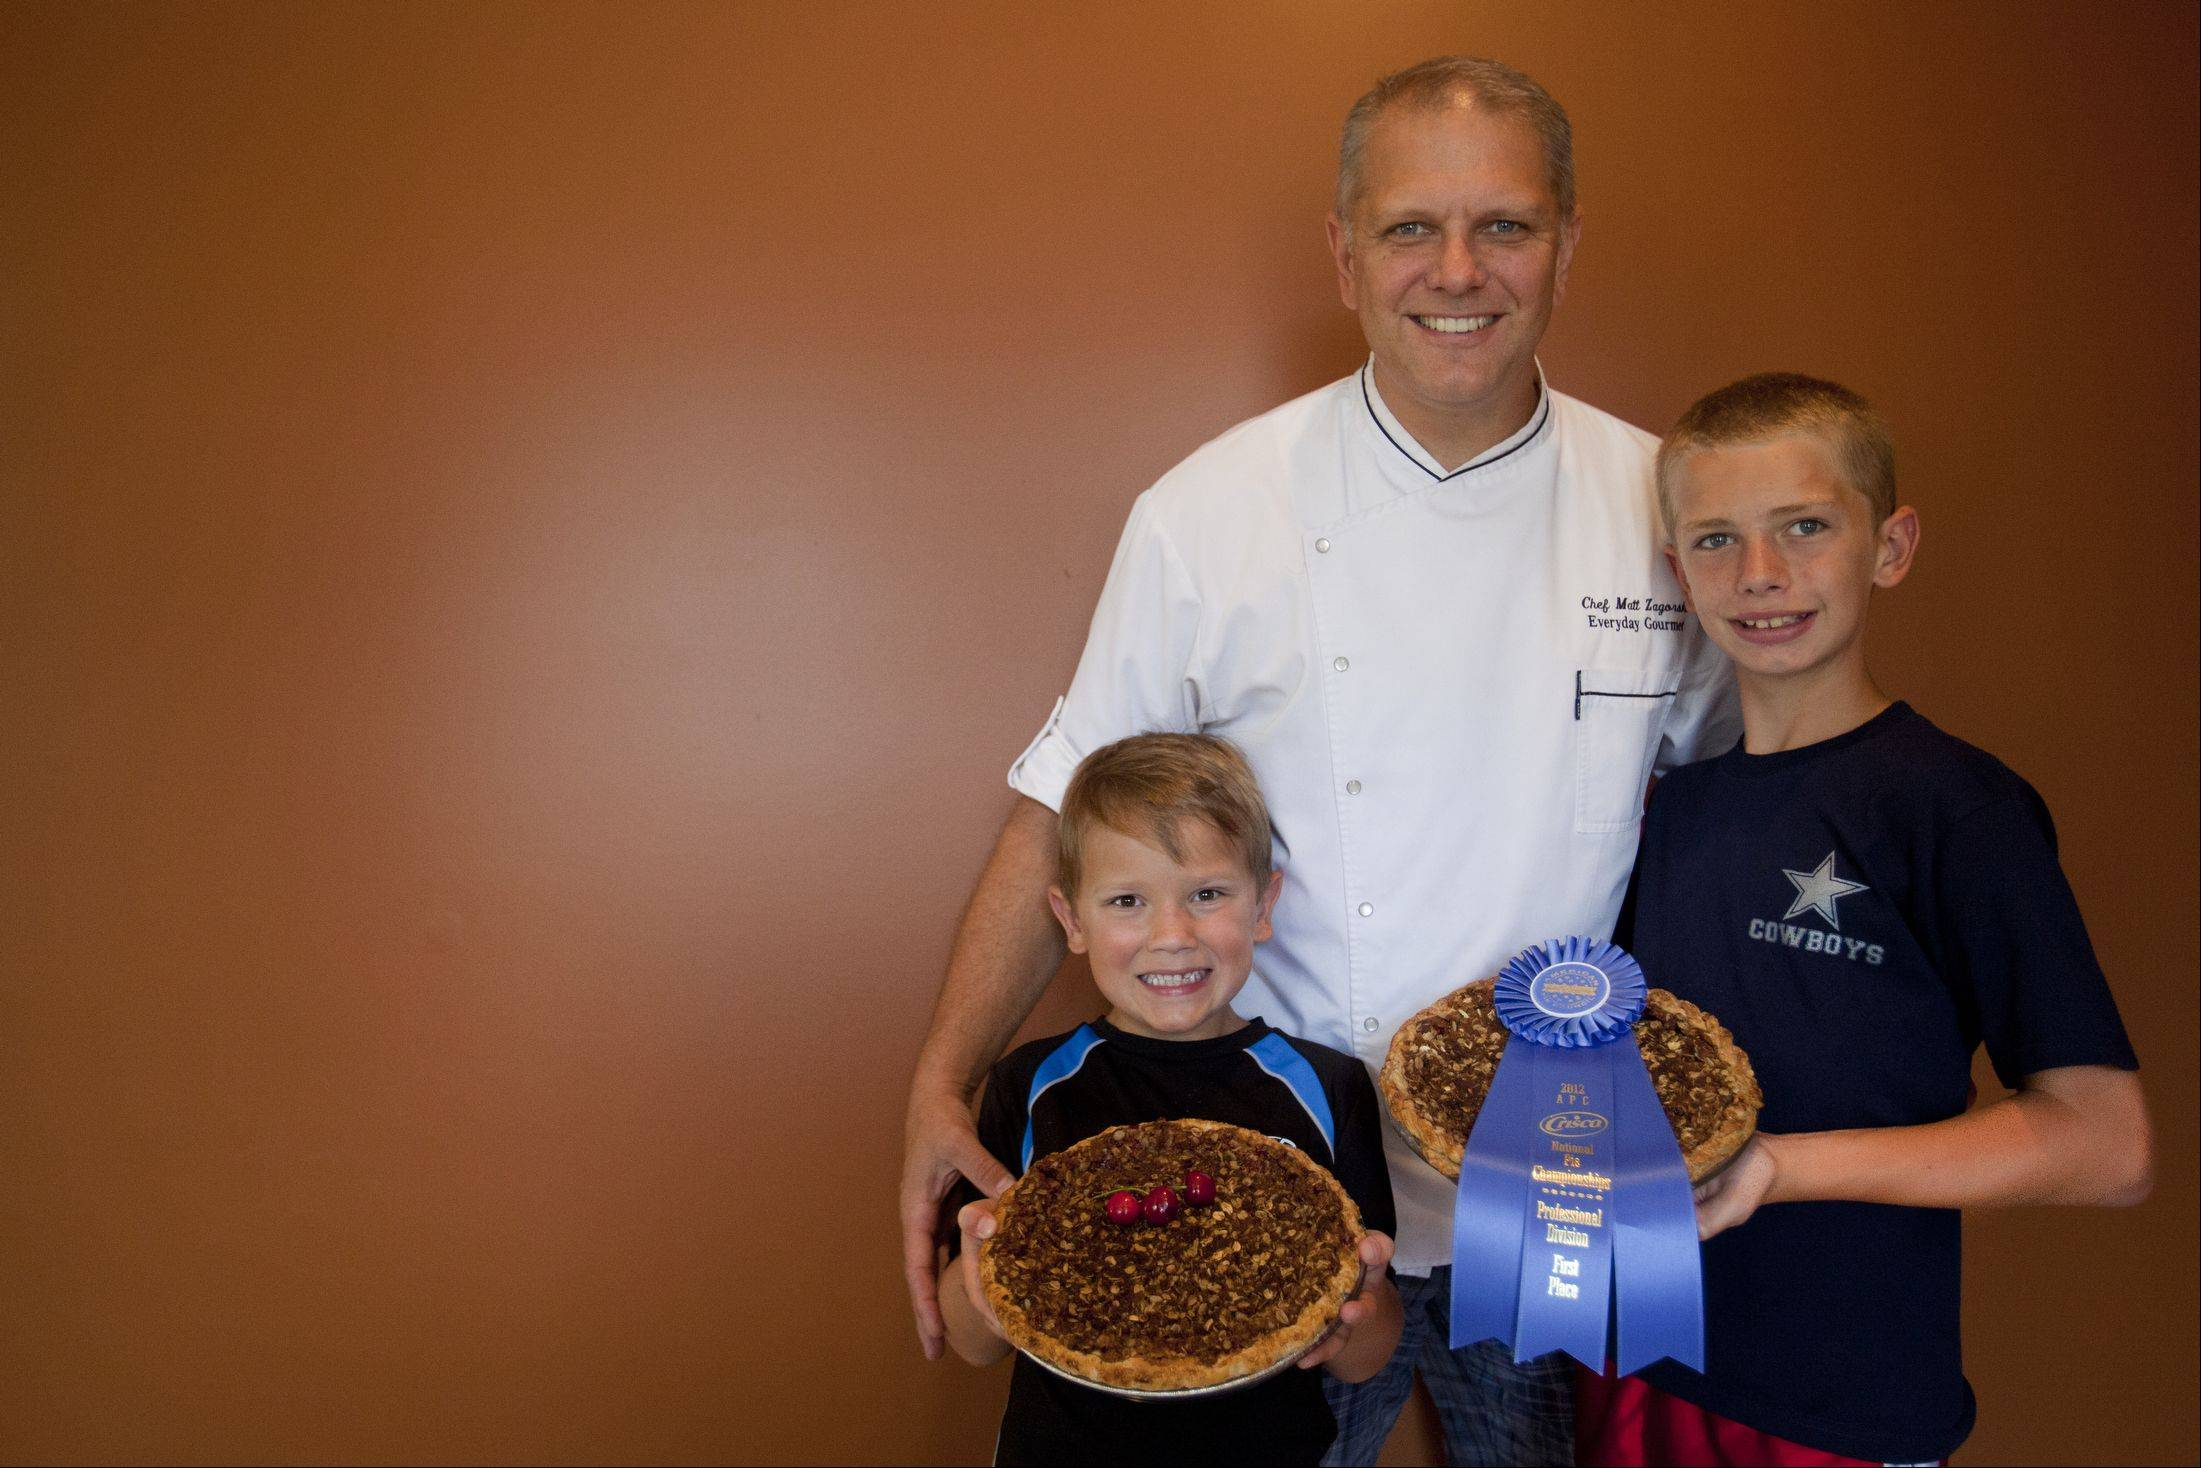 When he's not perfecting pie recipes, chef Matt Zagorski spends time with his sons, Max, 7, at left, and Zach, 11.